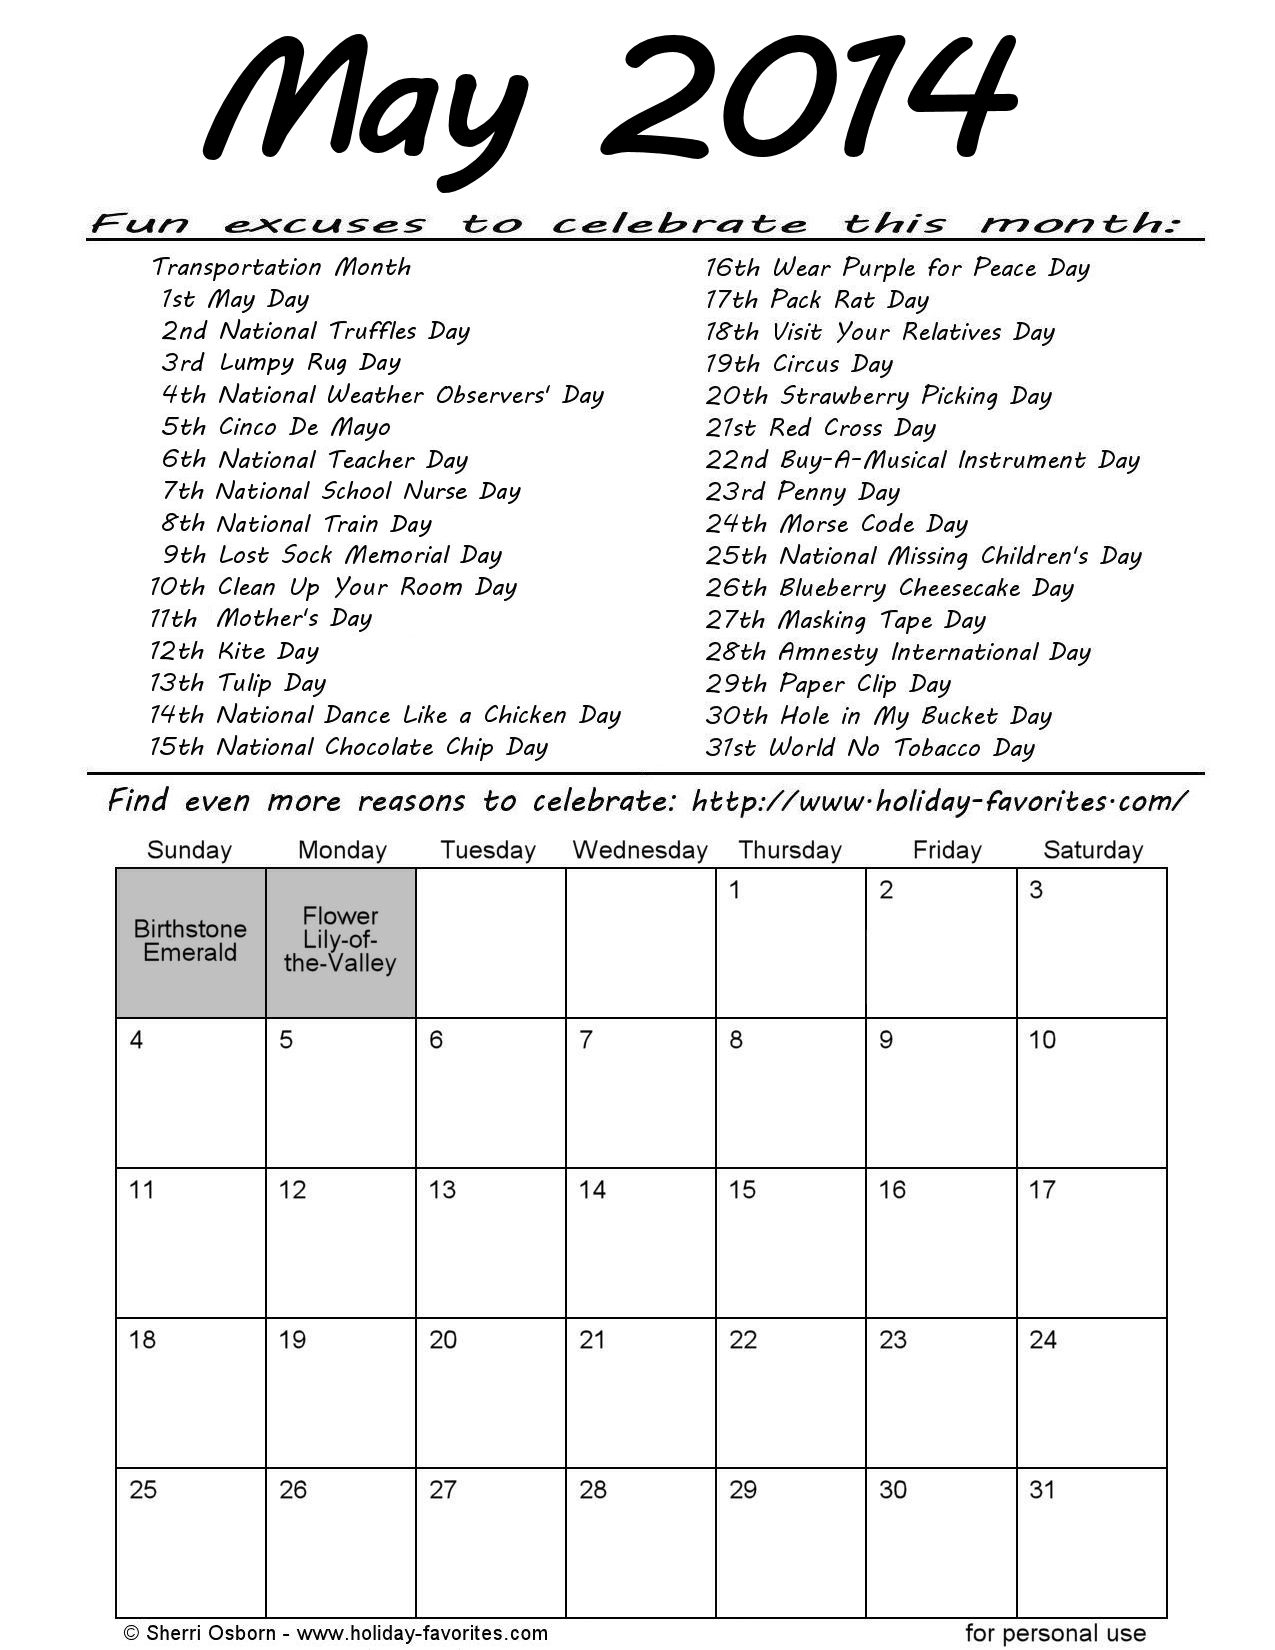 May 2014 Special Days Calendar | Holiday Favorites with regard to Special Days In The Calendar